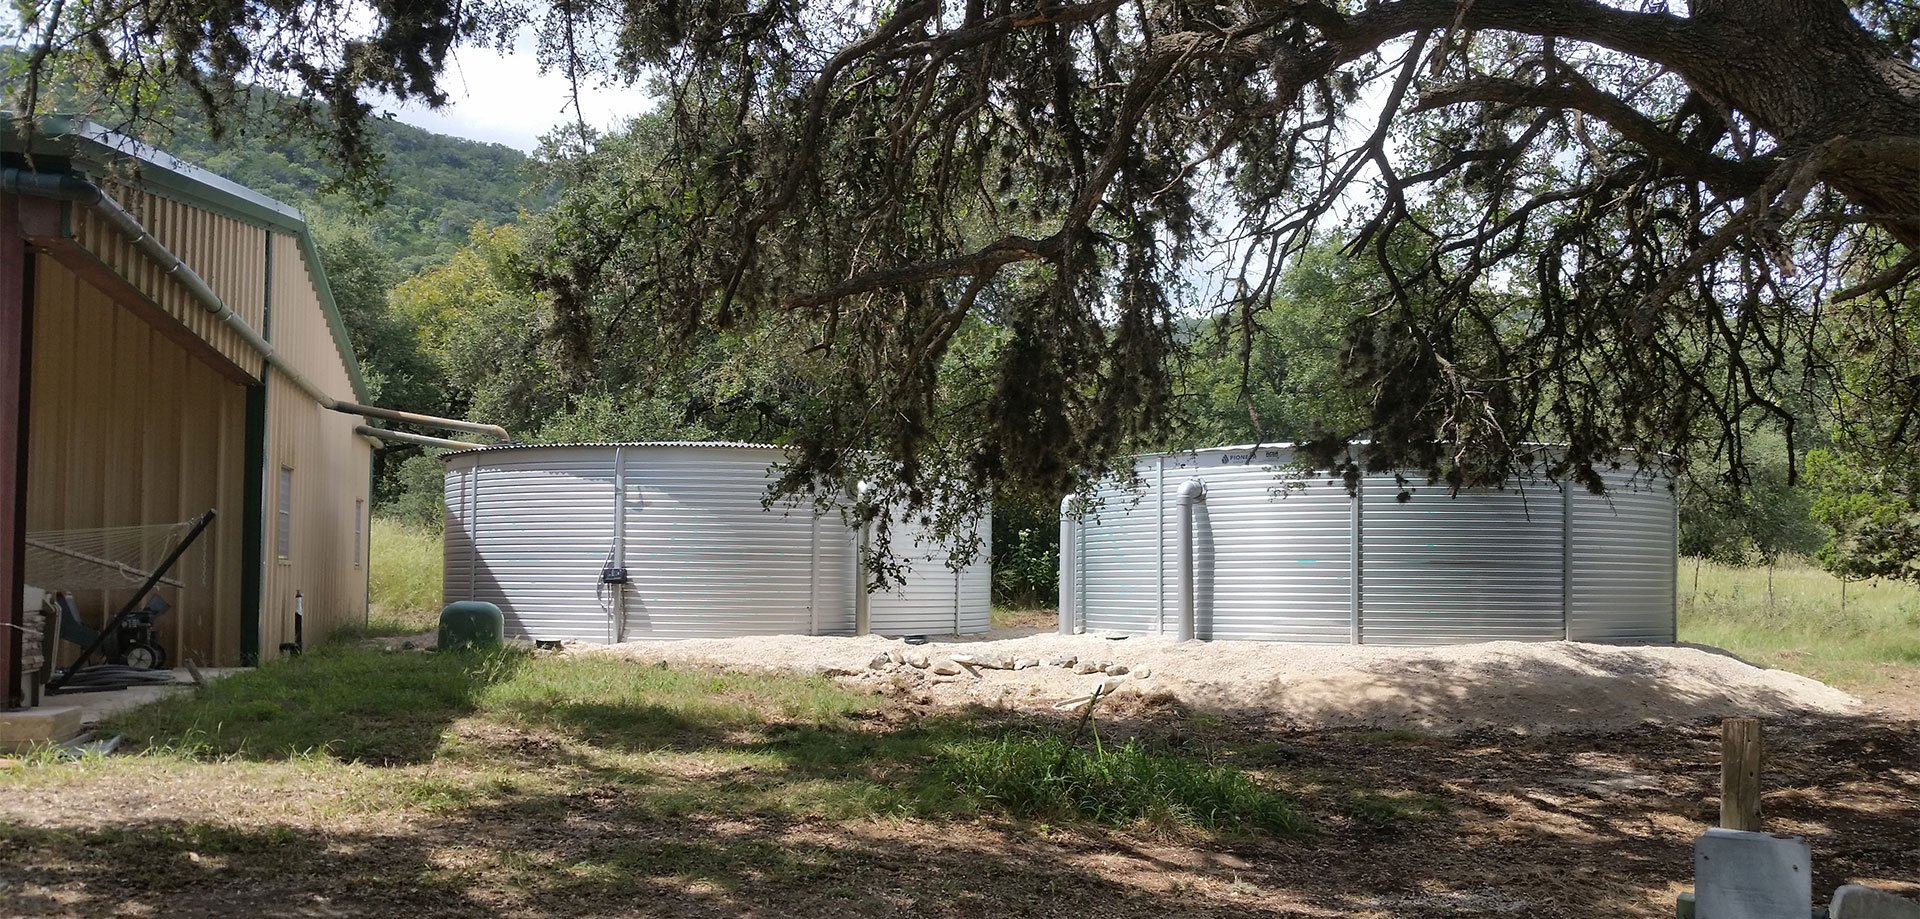 Rainwater Systems Inc installed Pioneer Water Tanks for Texas ranch